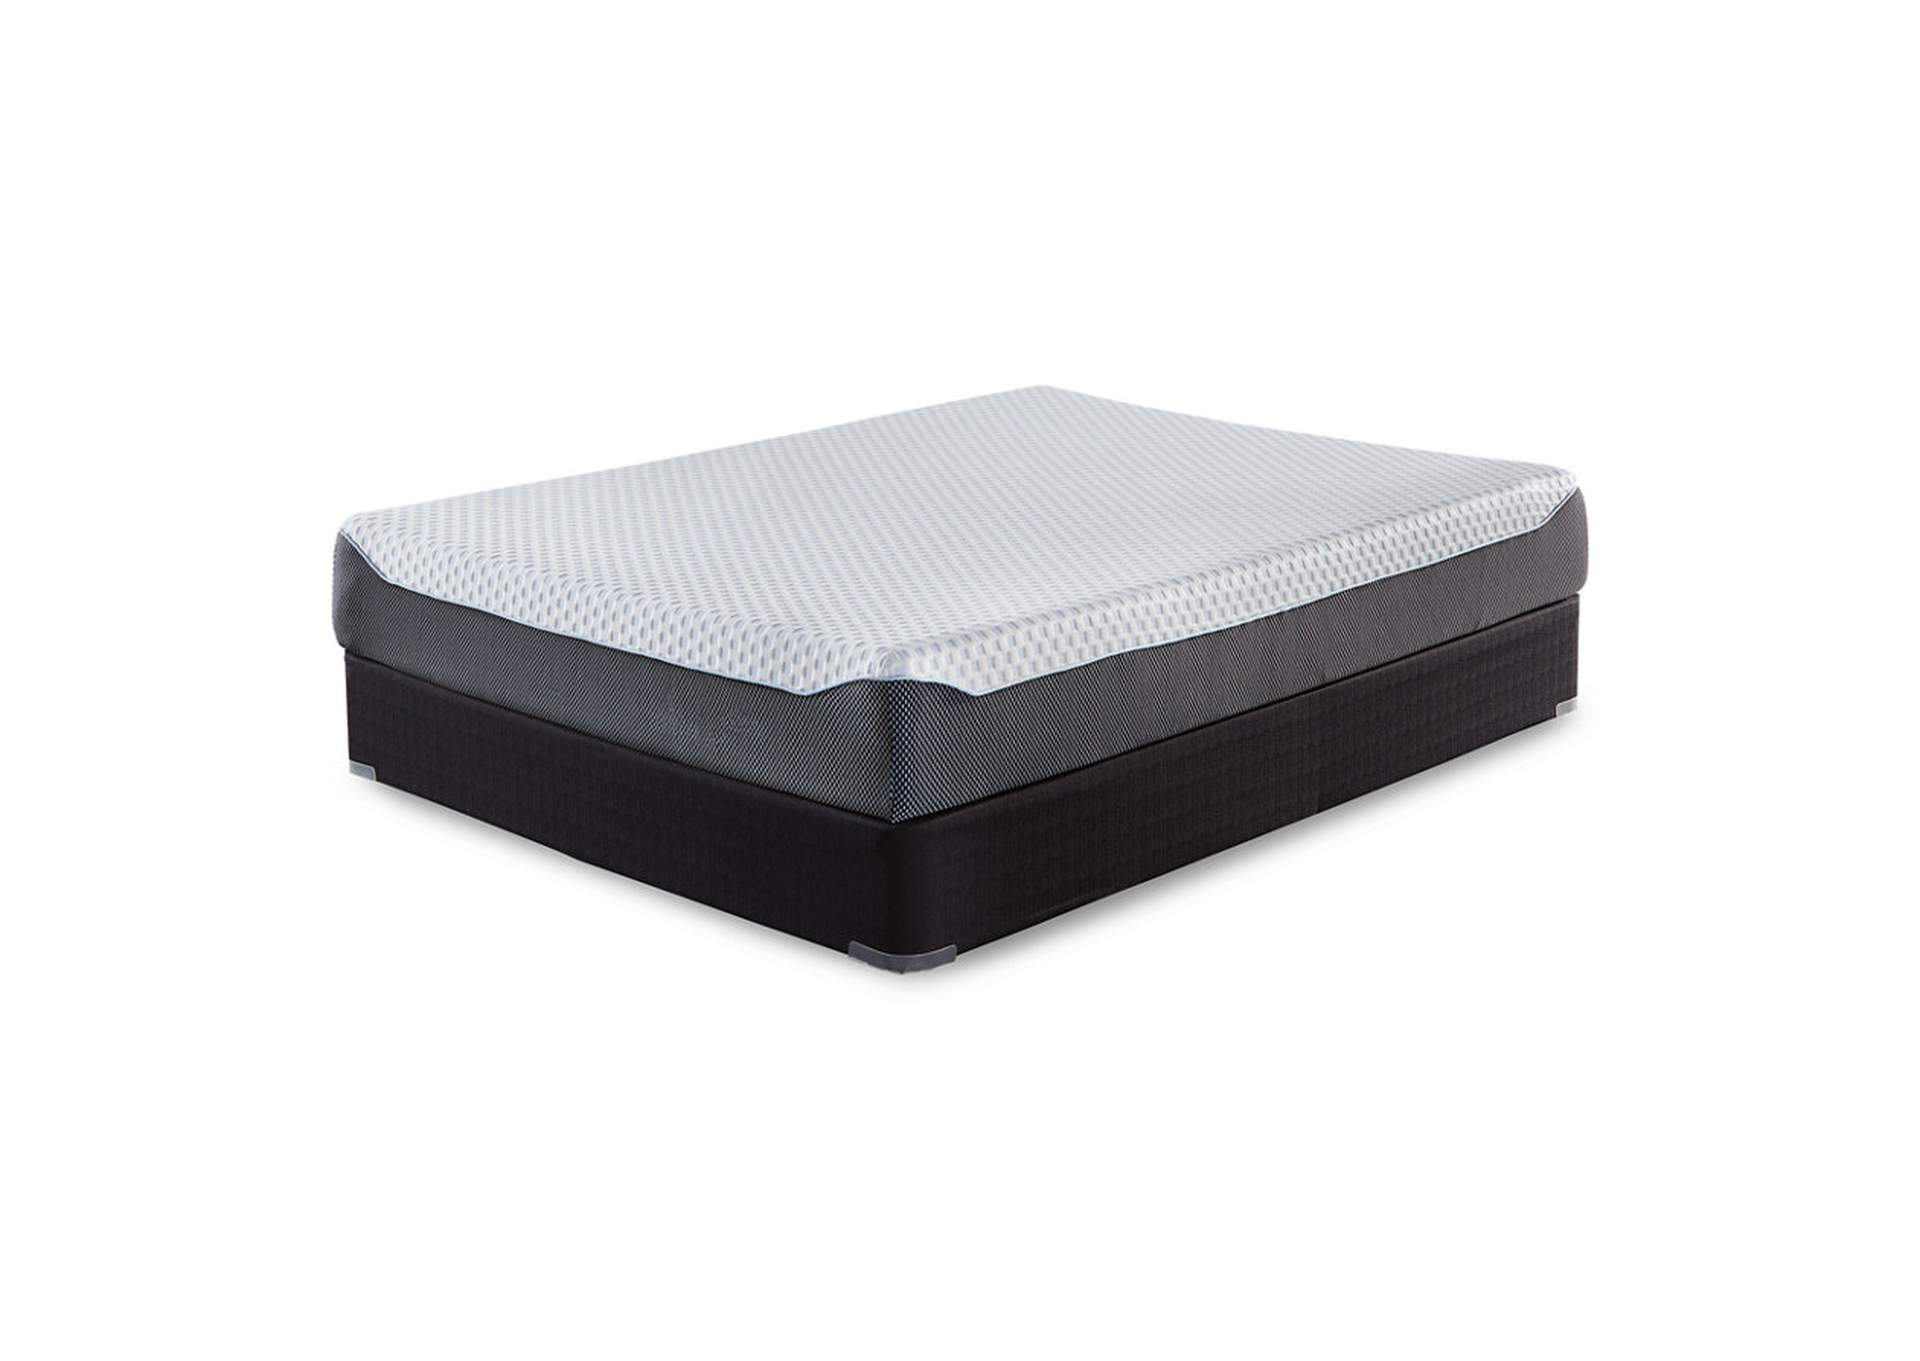 10 Inch Chime Elite Full Memory Foam Mattress in a box w/Foundation,Sierra Sleep by Ashley